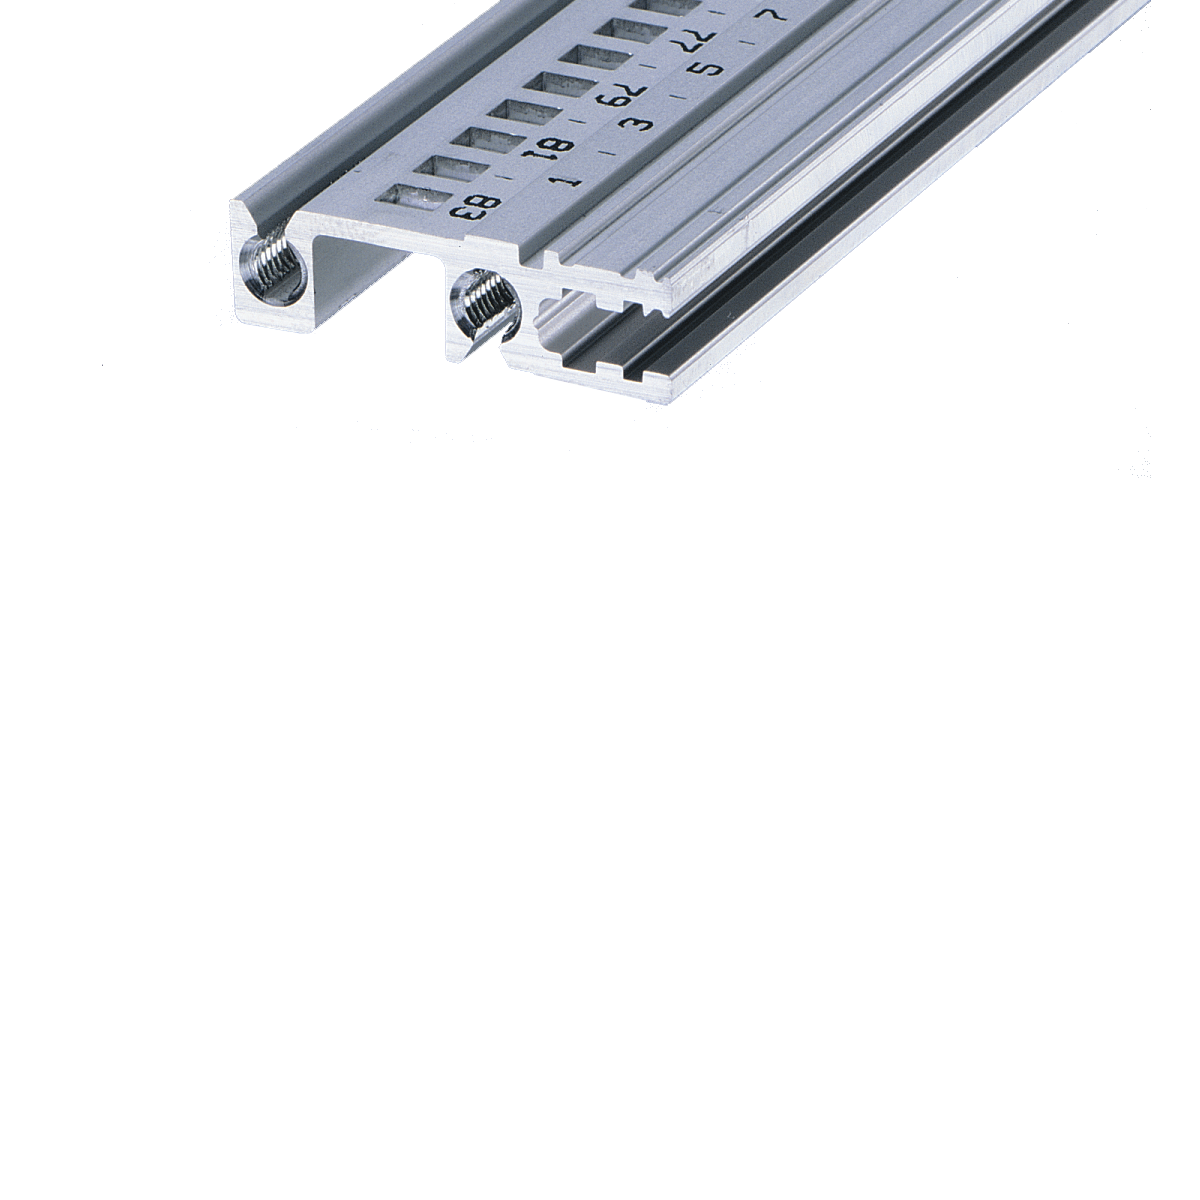 Image for Horizontal rail, rear, type H-VT, robust, recessed installation from Schroff | Europe, Middle East, Africa and India